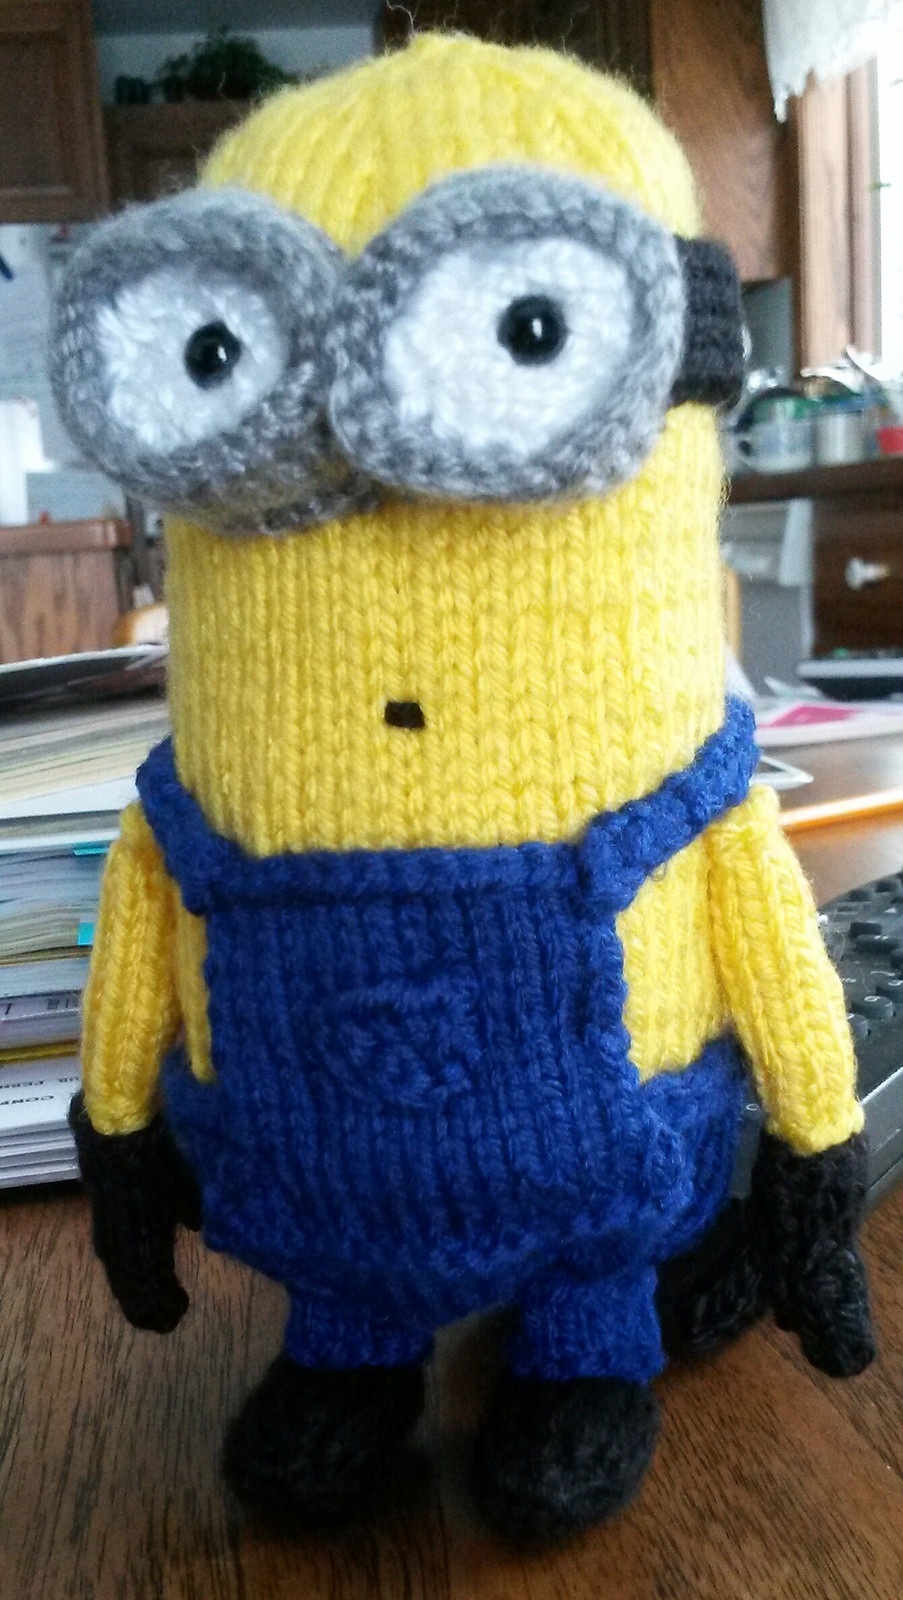 Elegant Minions and Despicable Me Knitting Patterns Free Knitting Patterns toys Of Delightful 41 Pictures Free Knitting Patterns toys